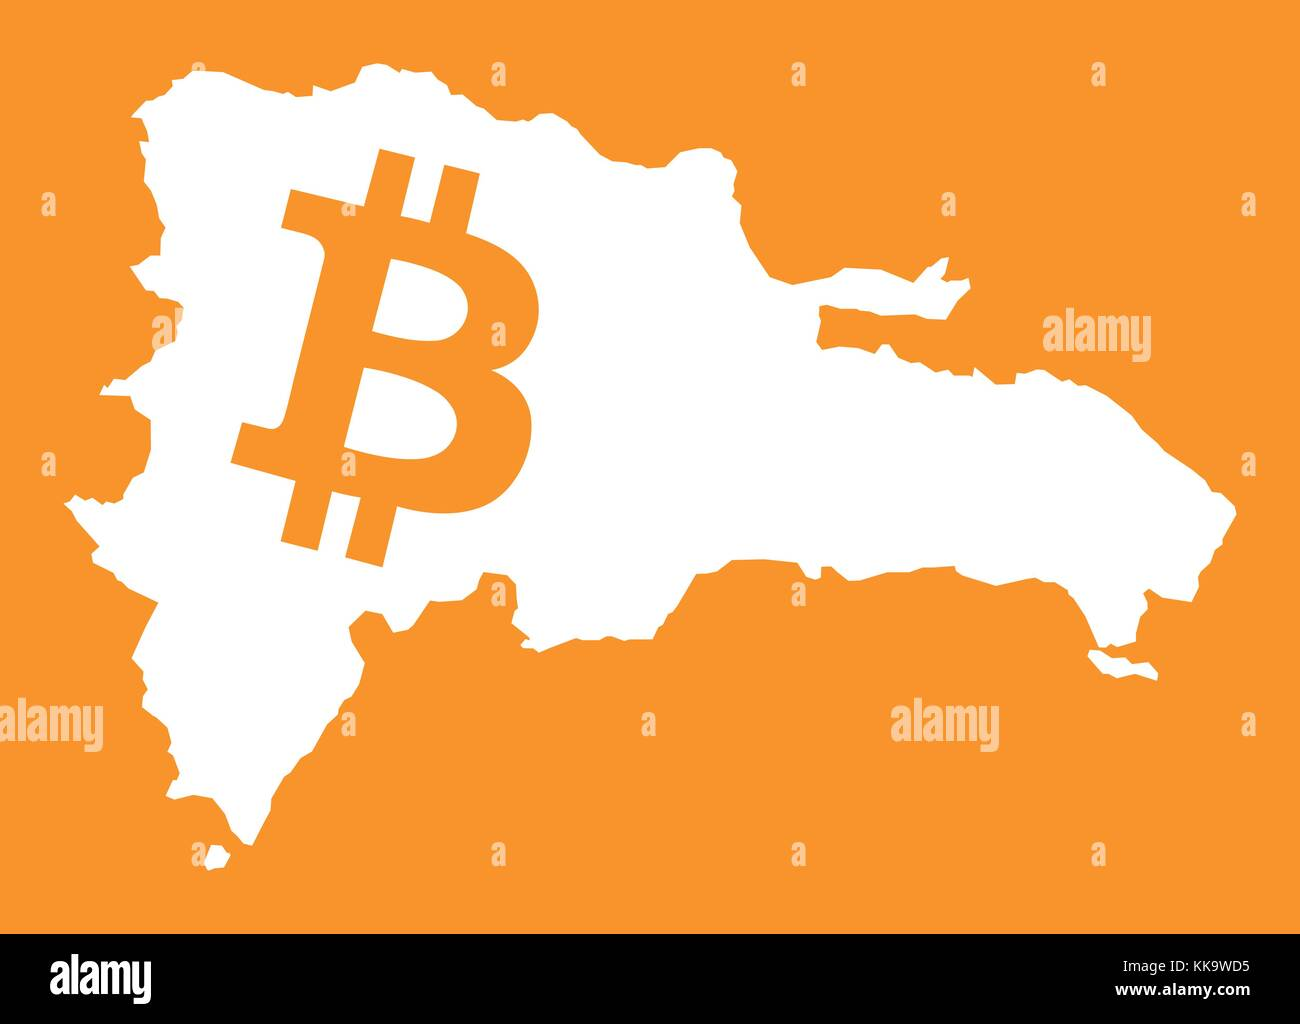 Dominican Republic Map With Bitcoin Crypto Currency Symbol Stock